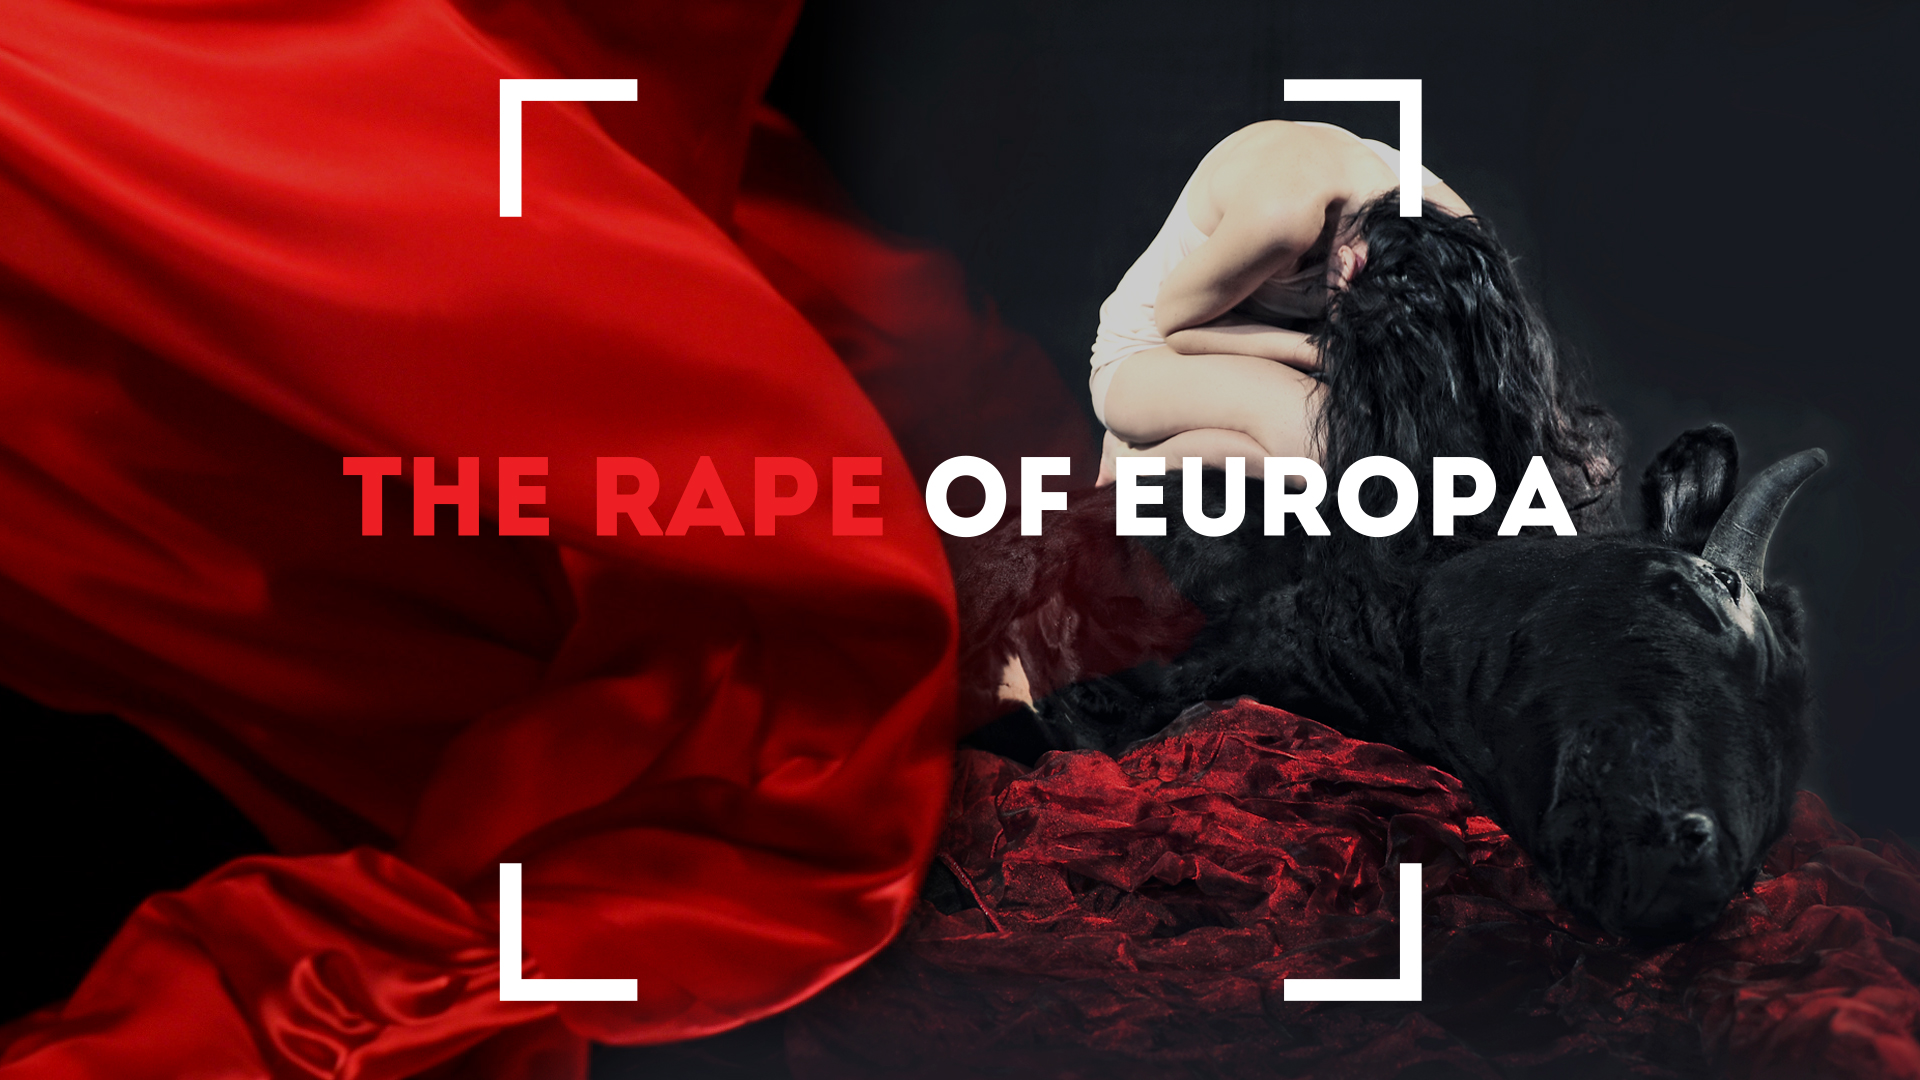 the rape of europa to the The rape of europa, a startling documentary, puts the number rather higher: one-fifth of all the known significant works of art in europe -- millions.